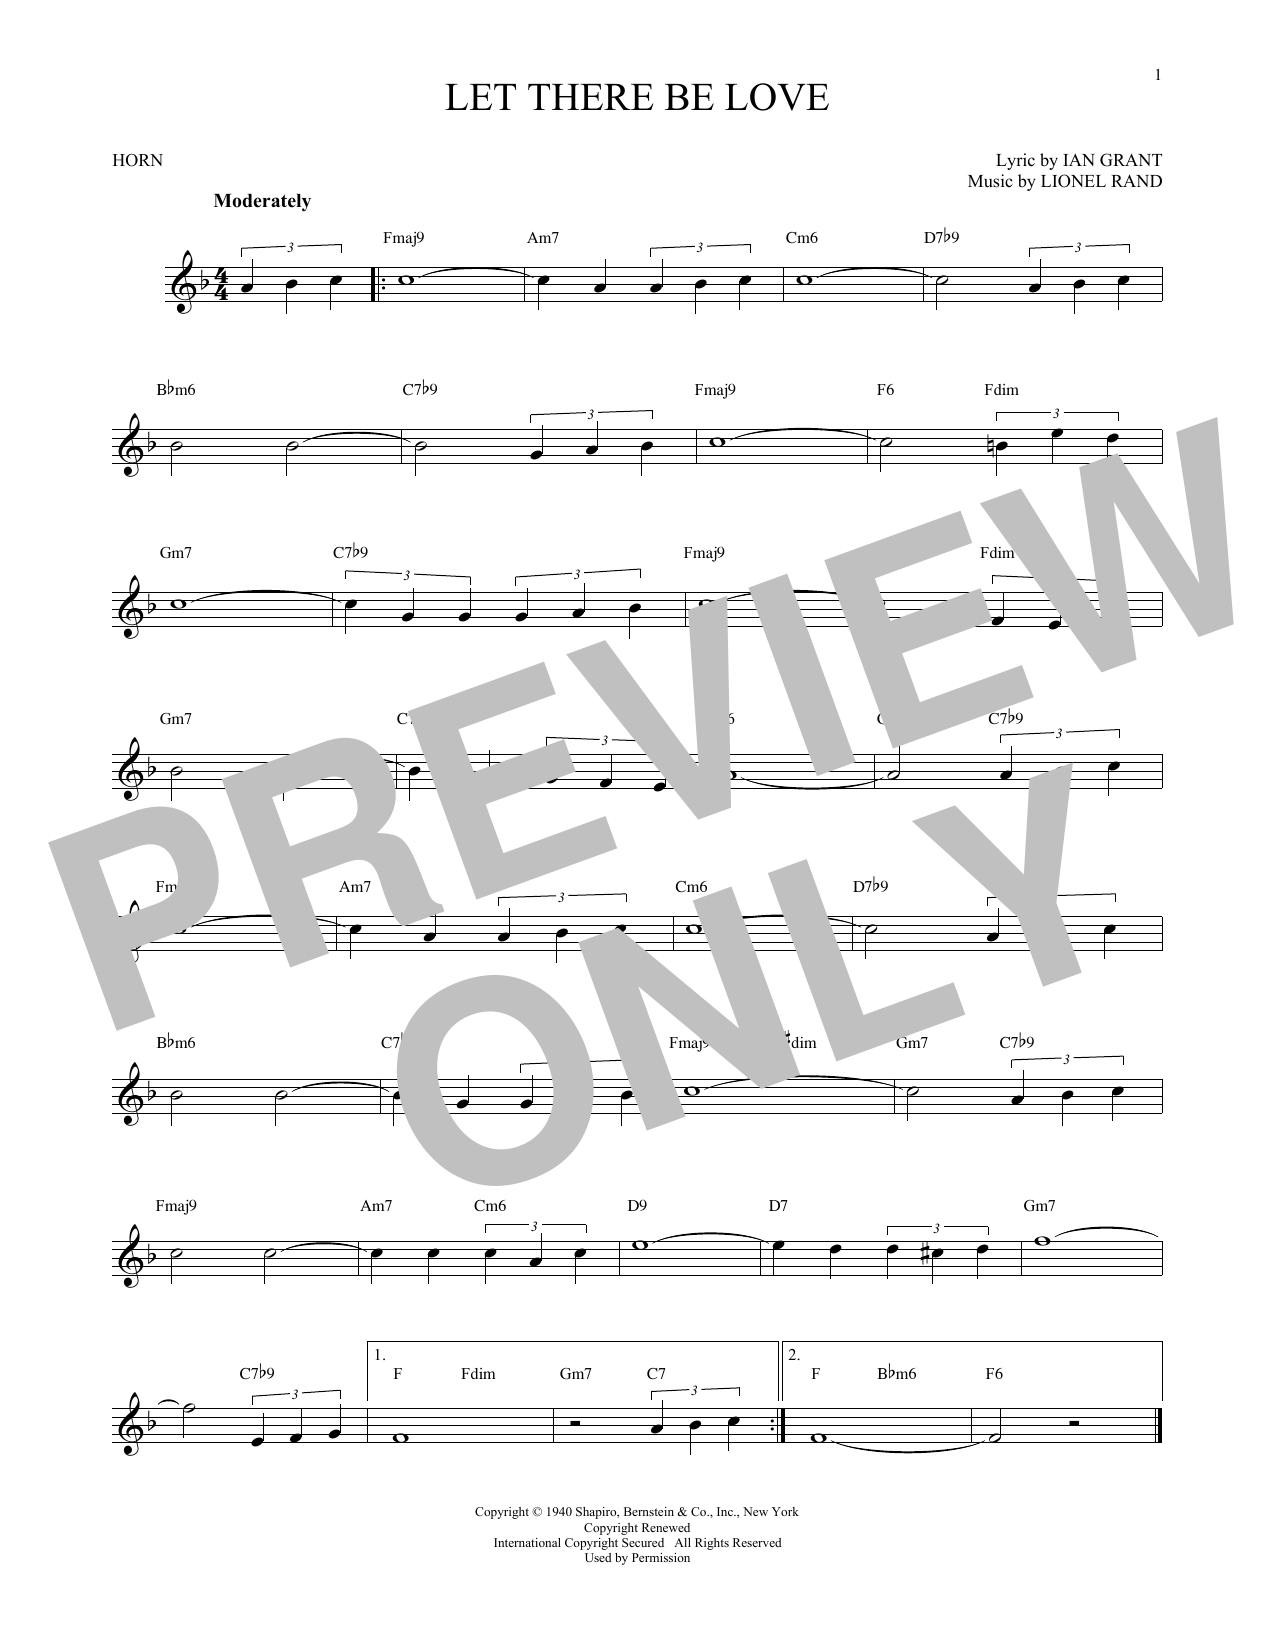 Lionel Rand Let There Be Love sheet music notes and chords - download printable PDF.